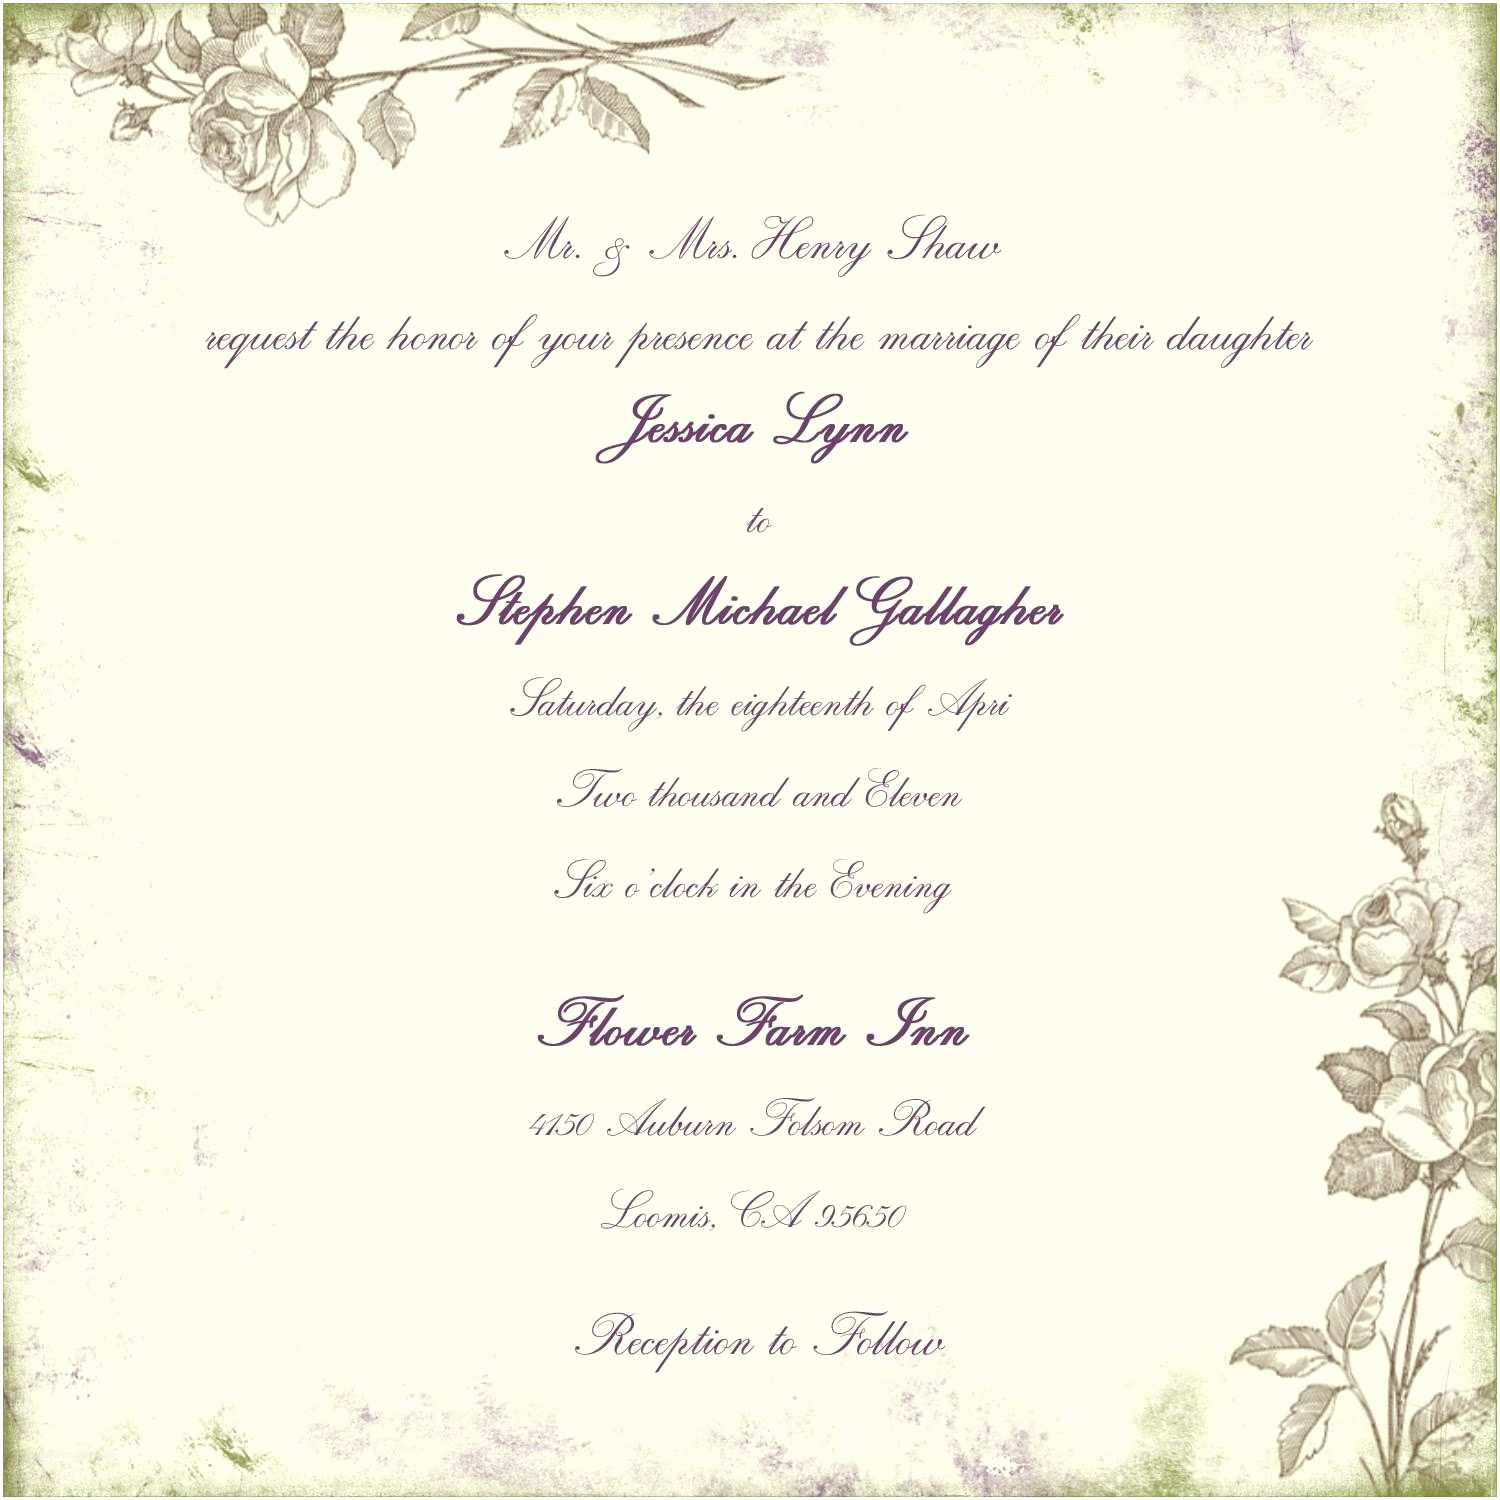 Indian Wedding Reception Invitation Wording Samples Bride Groom Wording for Wedding Invitations Marriage Invitation